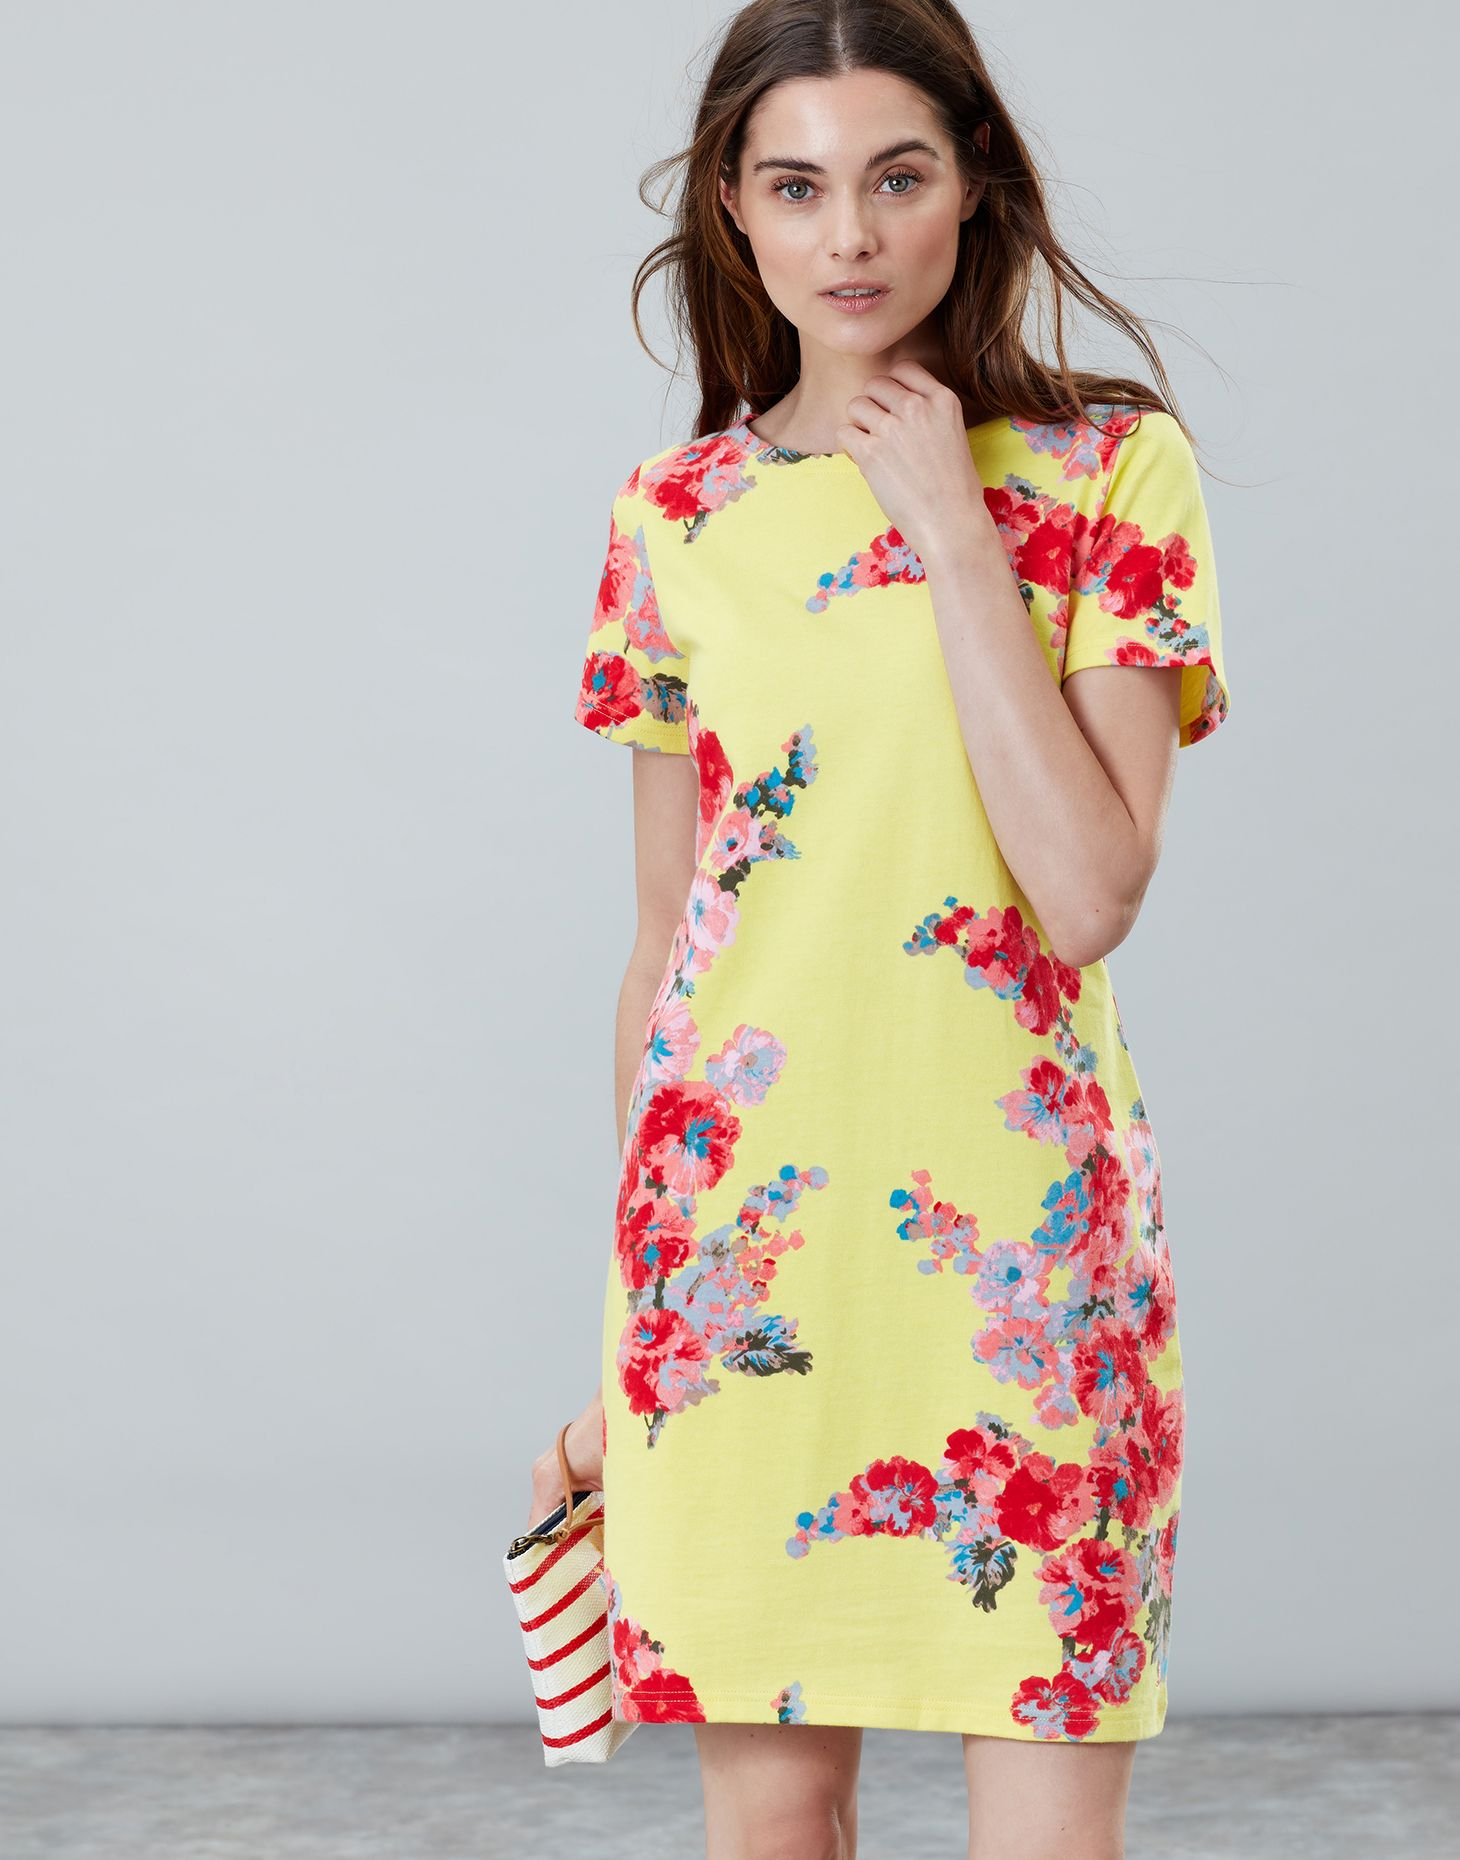 e05c343c41 Hover to zoom. Joules UK Riviera Print Womens Dress With Short Sleeves  LEMON FLORAL